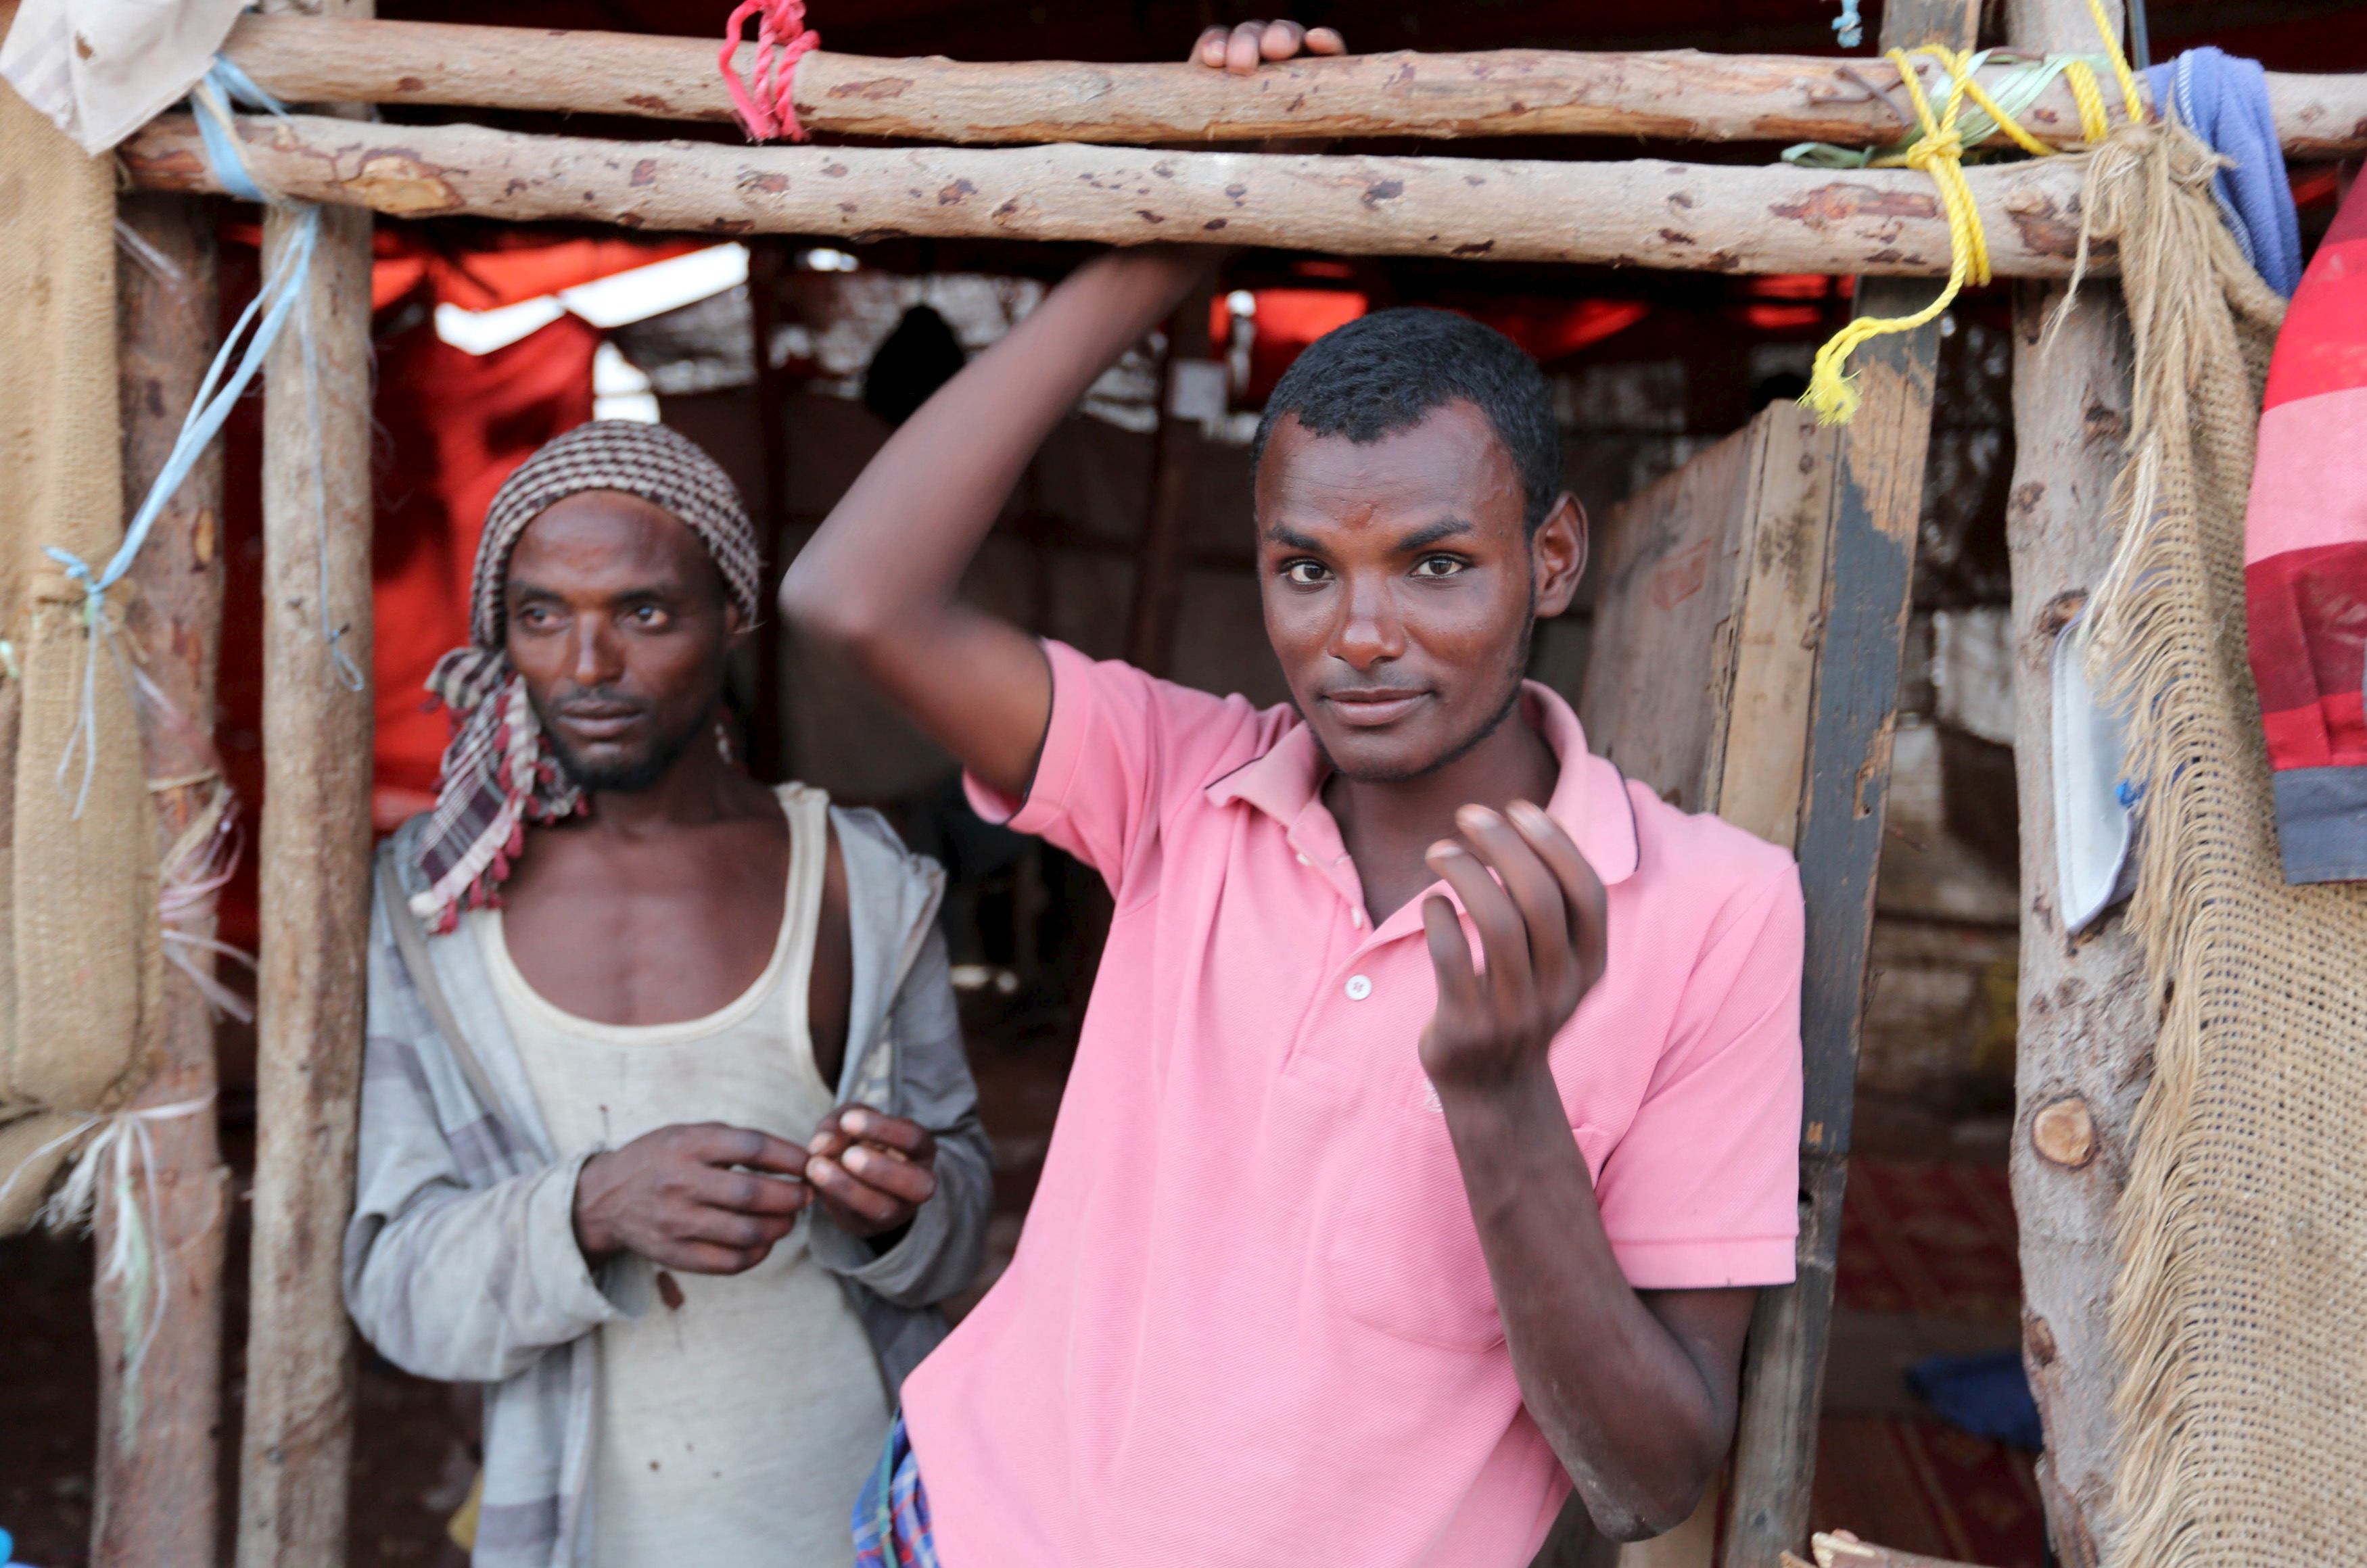 Illegal immigrants from Ethiopia attempting to cross into Yemen stand at their makeshift shelter in Bosasso, northern Somalia on April 14, 2015.